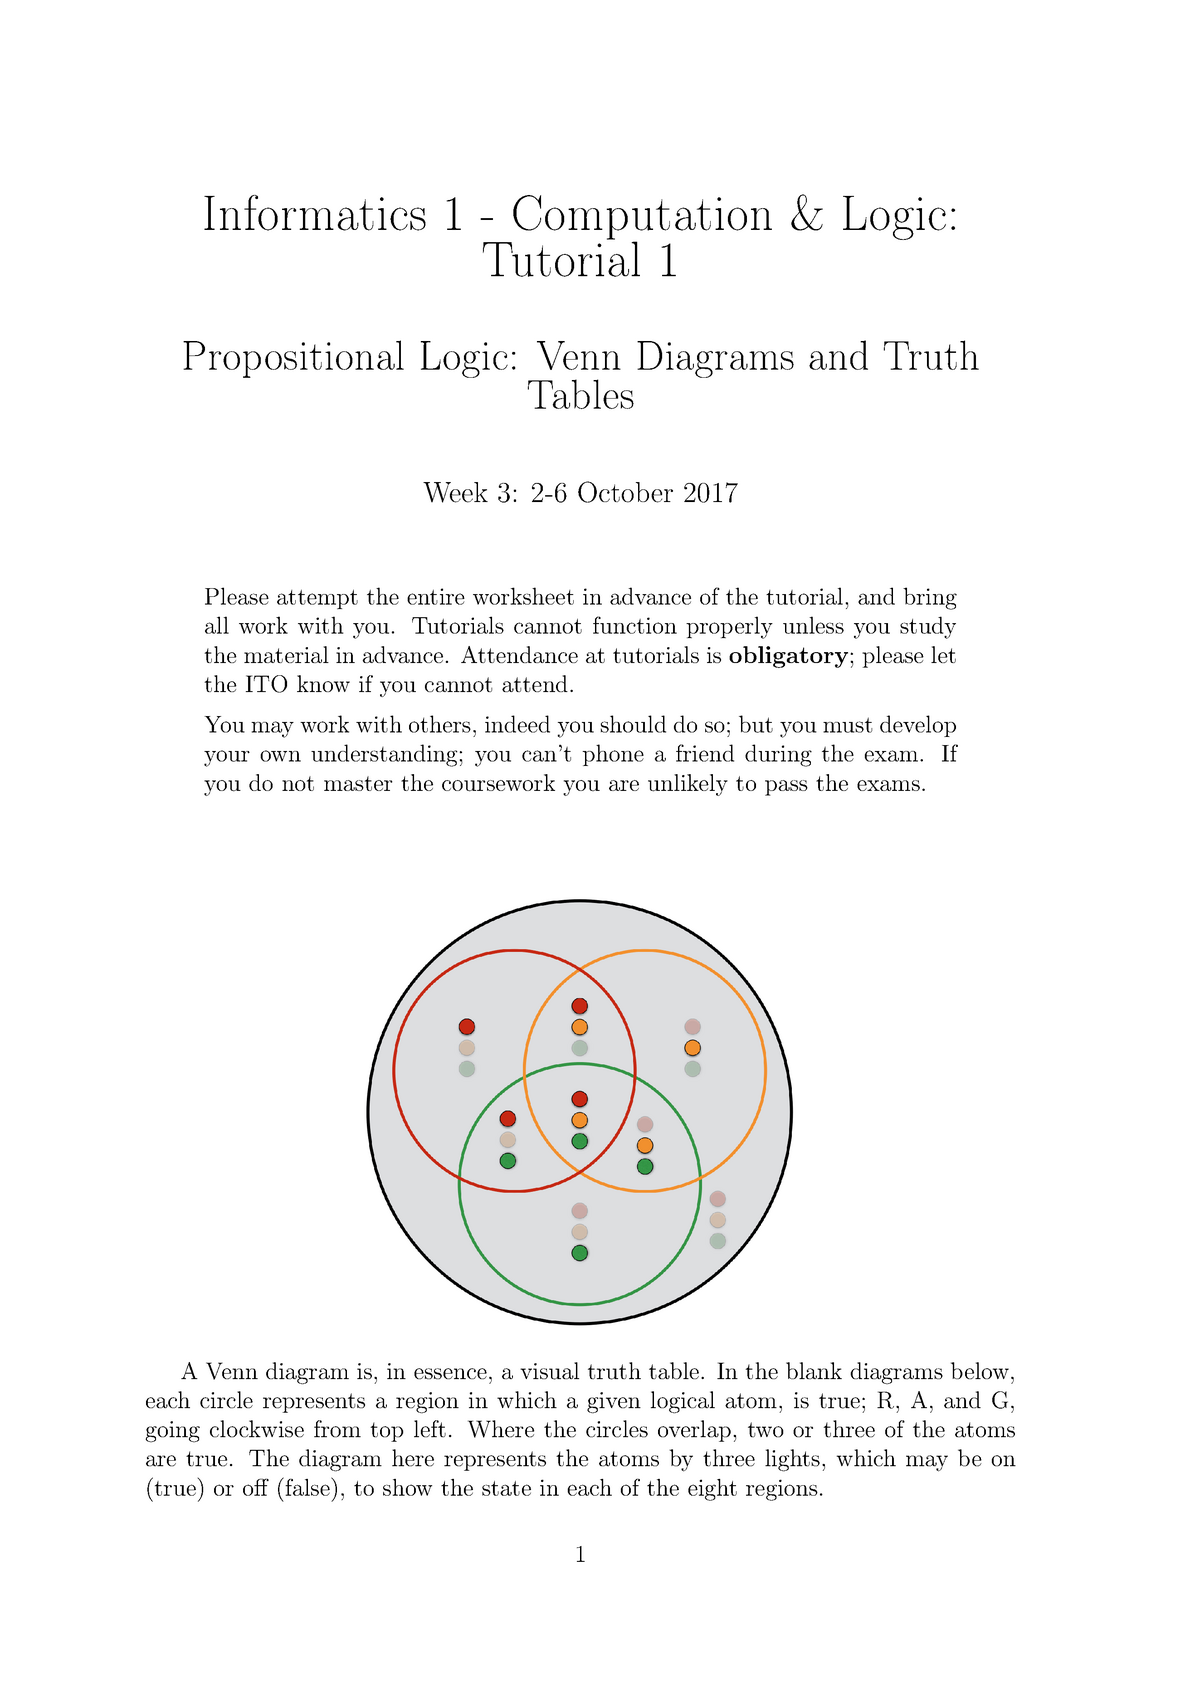 tutorial 1 - propositional logicvenn diagrams and truth tables -  computation and logic - studocu